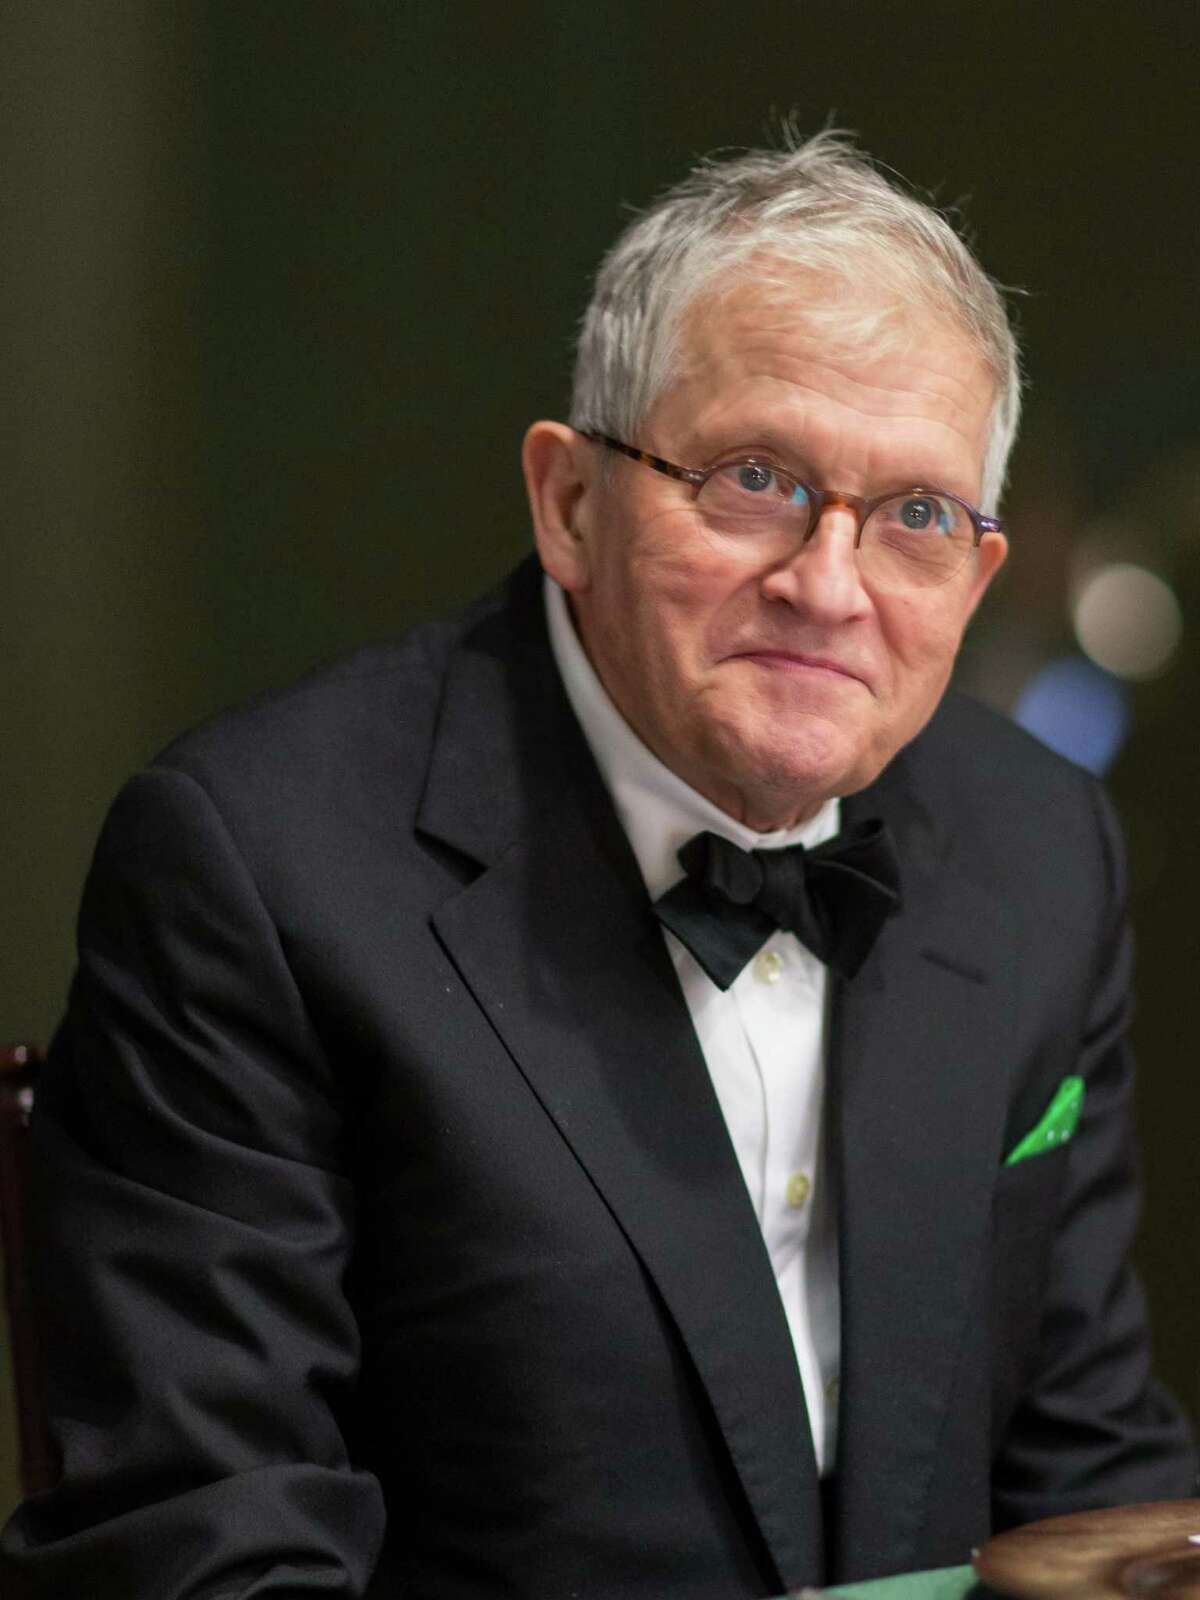 Acclaimed artist David Hockney attends a dinner in his honor on October 22, 2013 to celebrate the opening of his exhibition at the de Young Museum.